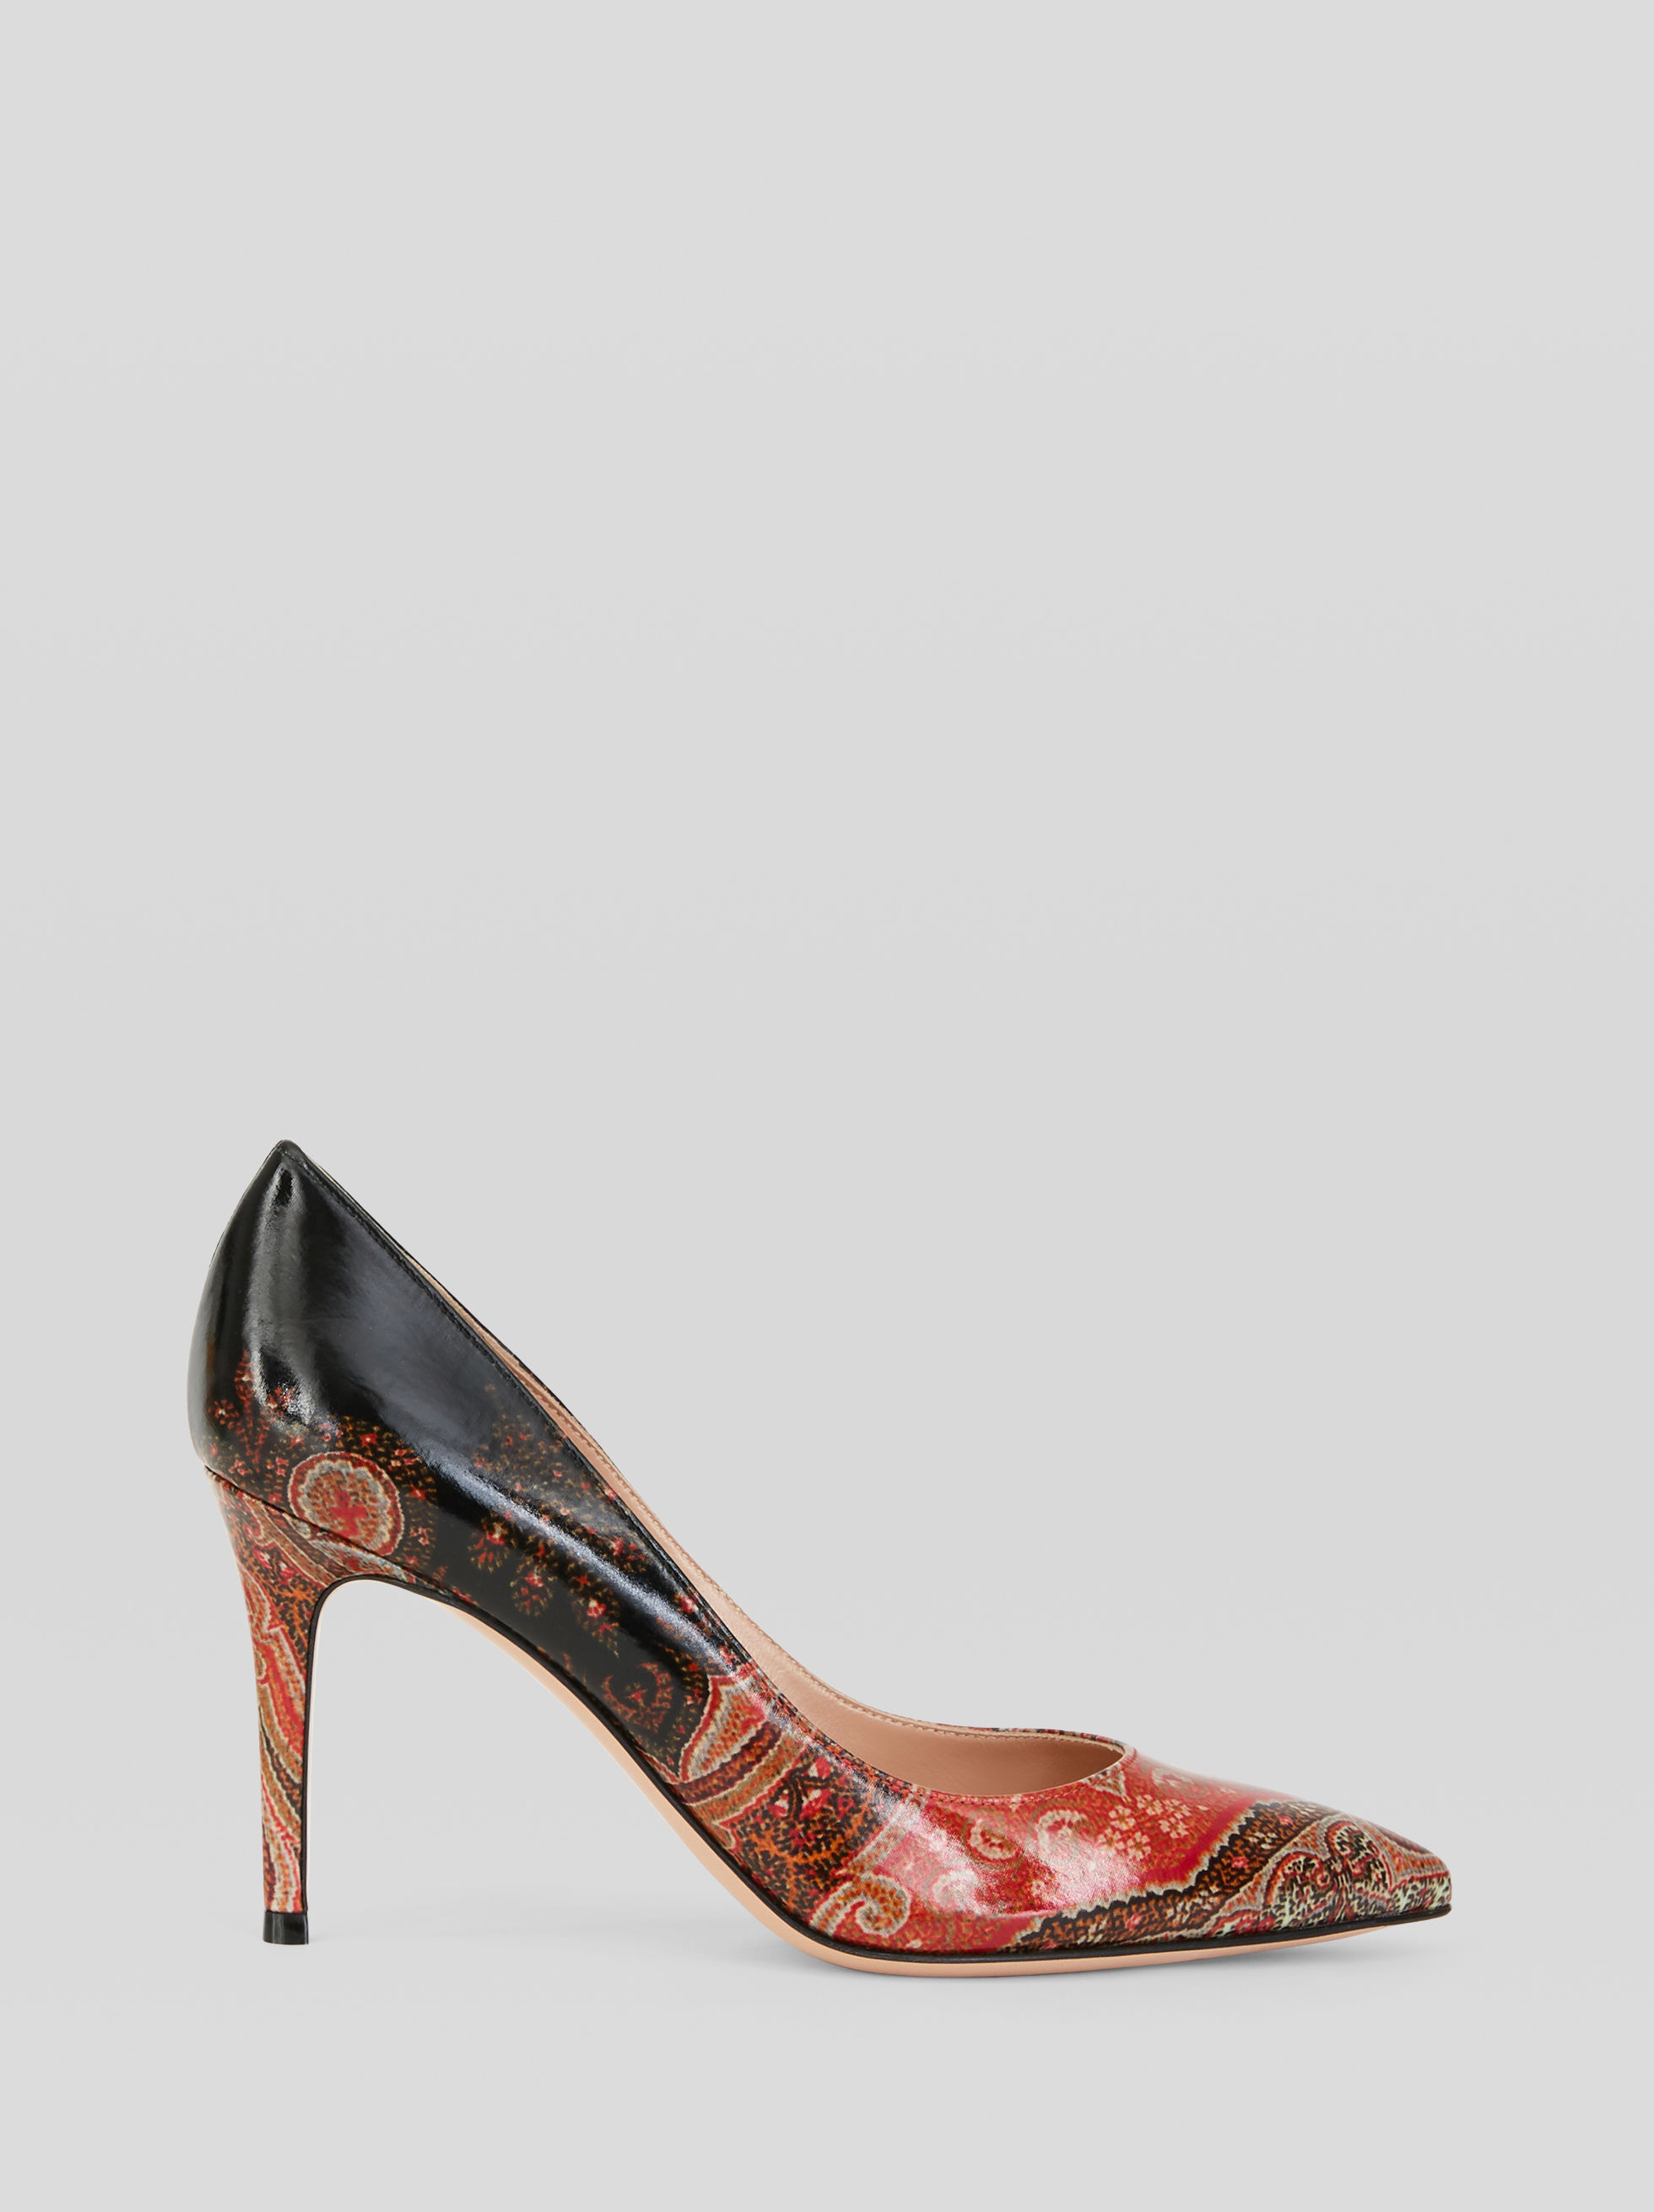 GIANVITO ROSSI COURT SHOES FOR ETRO